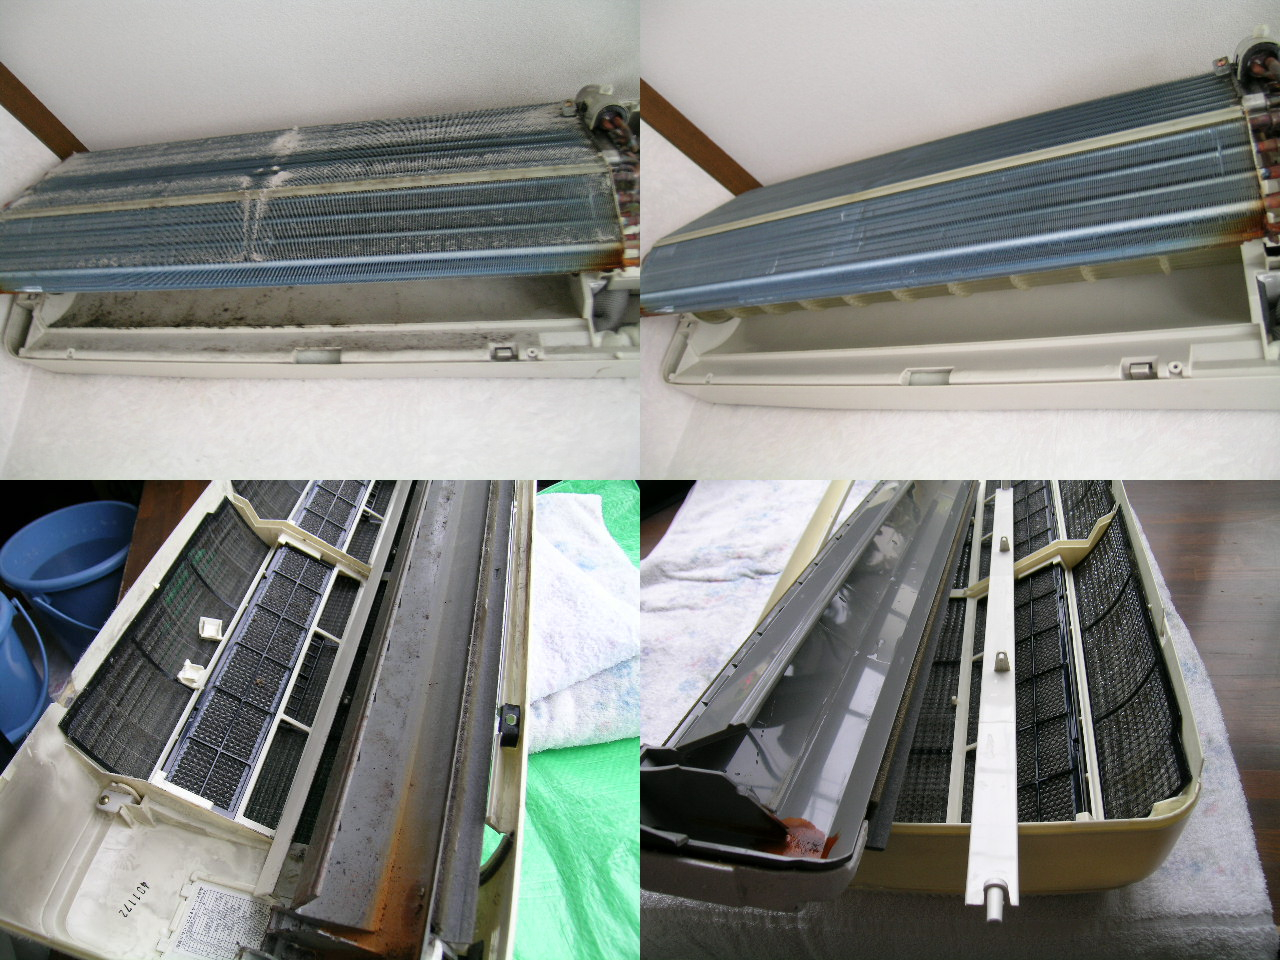 http://ajras.net/images/110531-aircon1.jpg